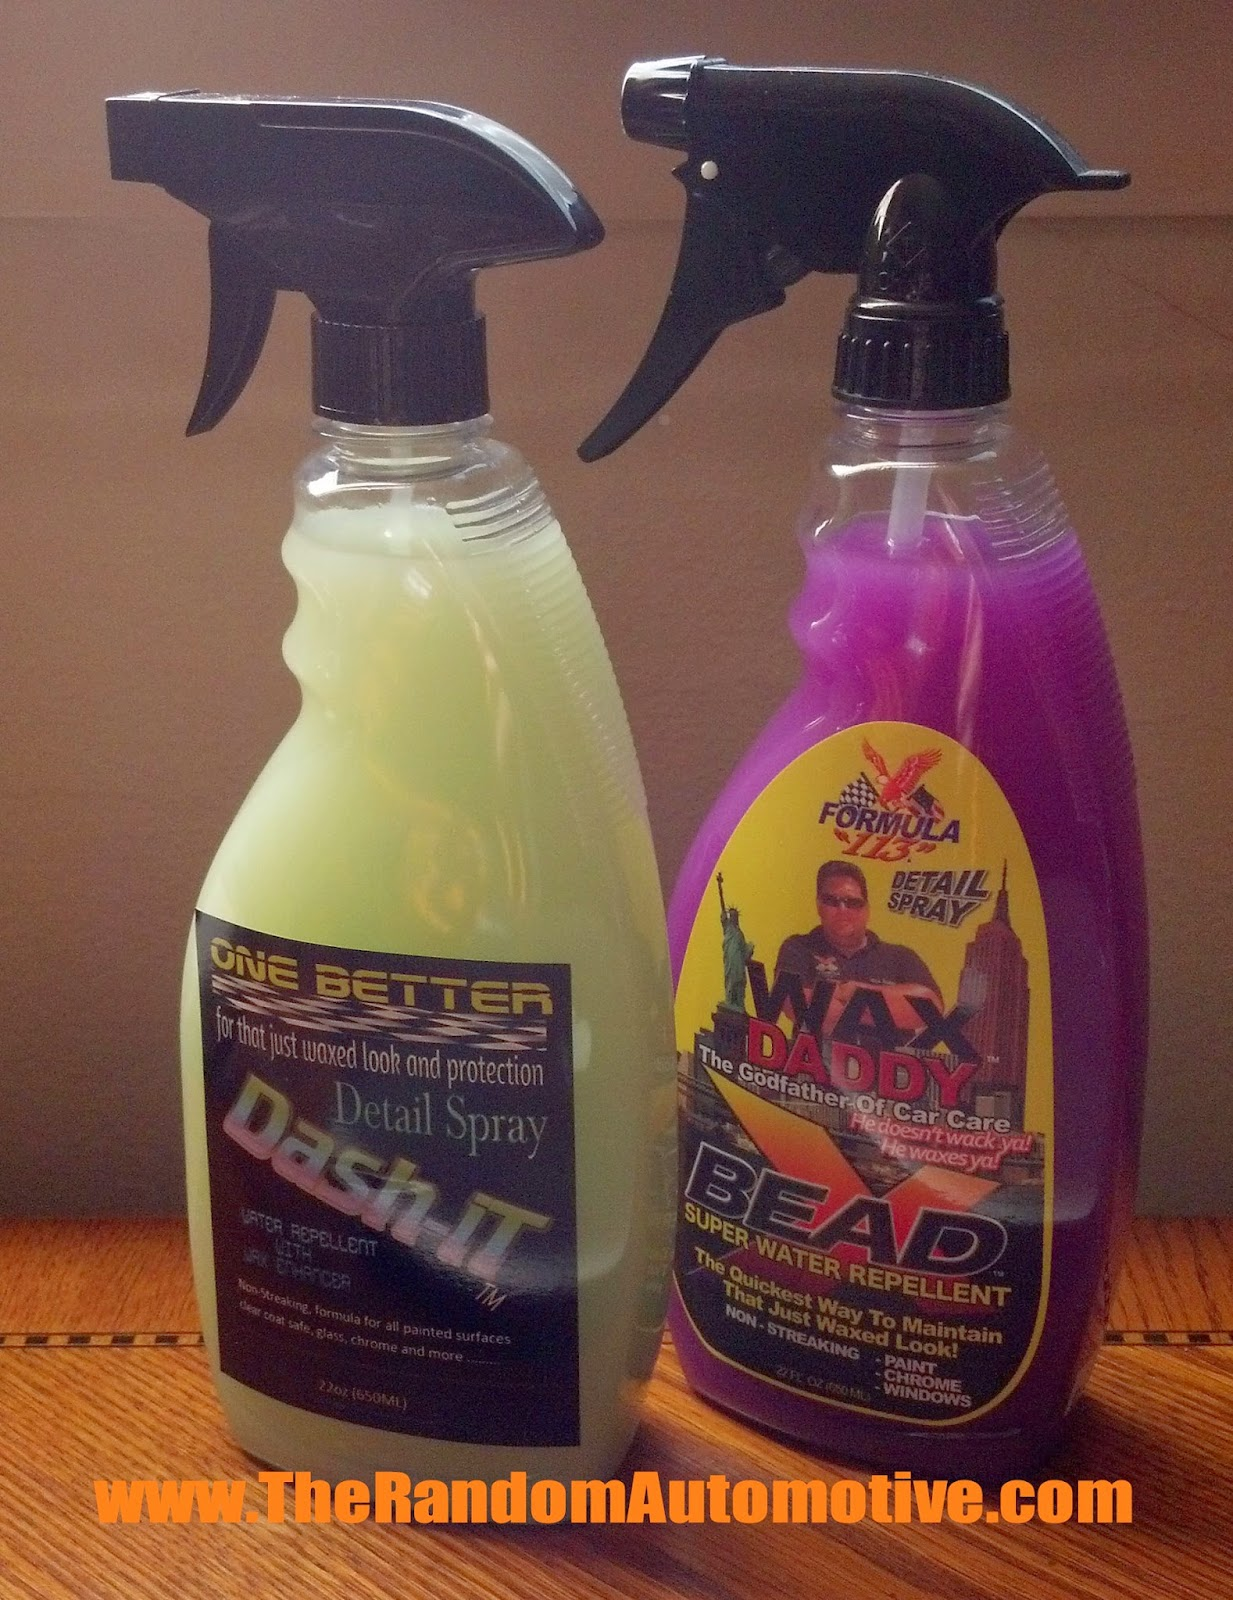 one better car care products dash-it bead x wax daddy spray detailer random auto review